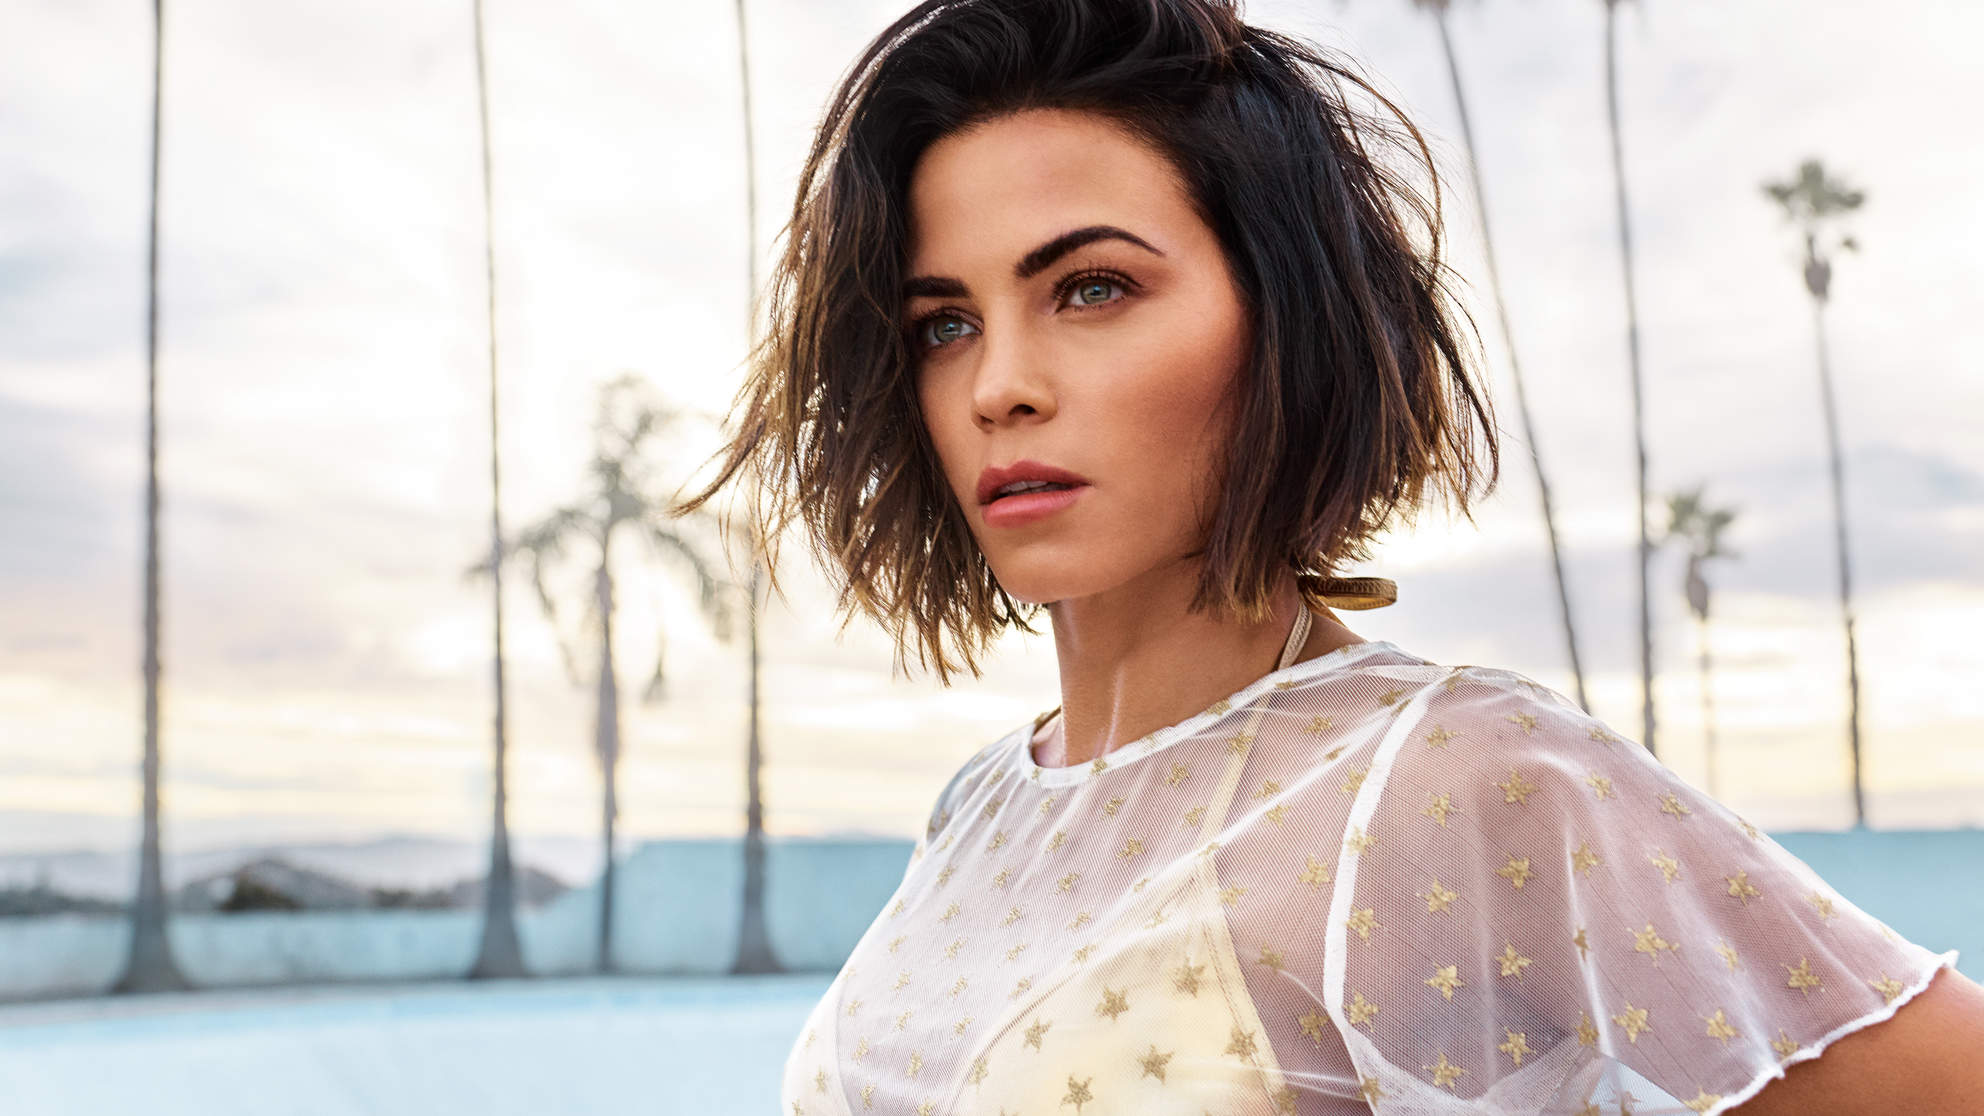 Jenna Dewan Tatum Gets Real About Marriage: 'When People Say You Guys Have Such a Perfect Life, I Want to Scream'